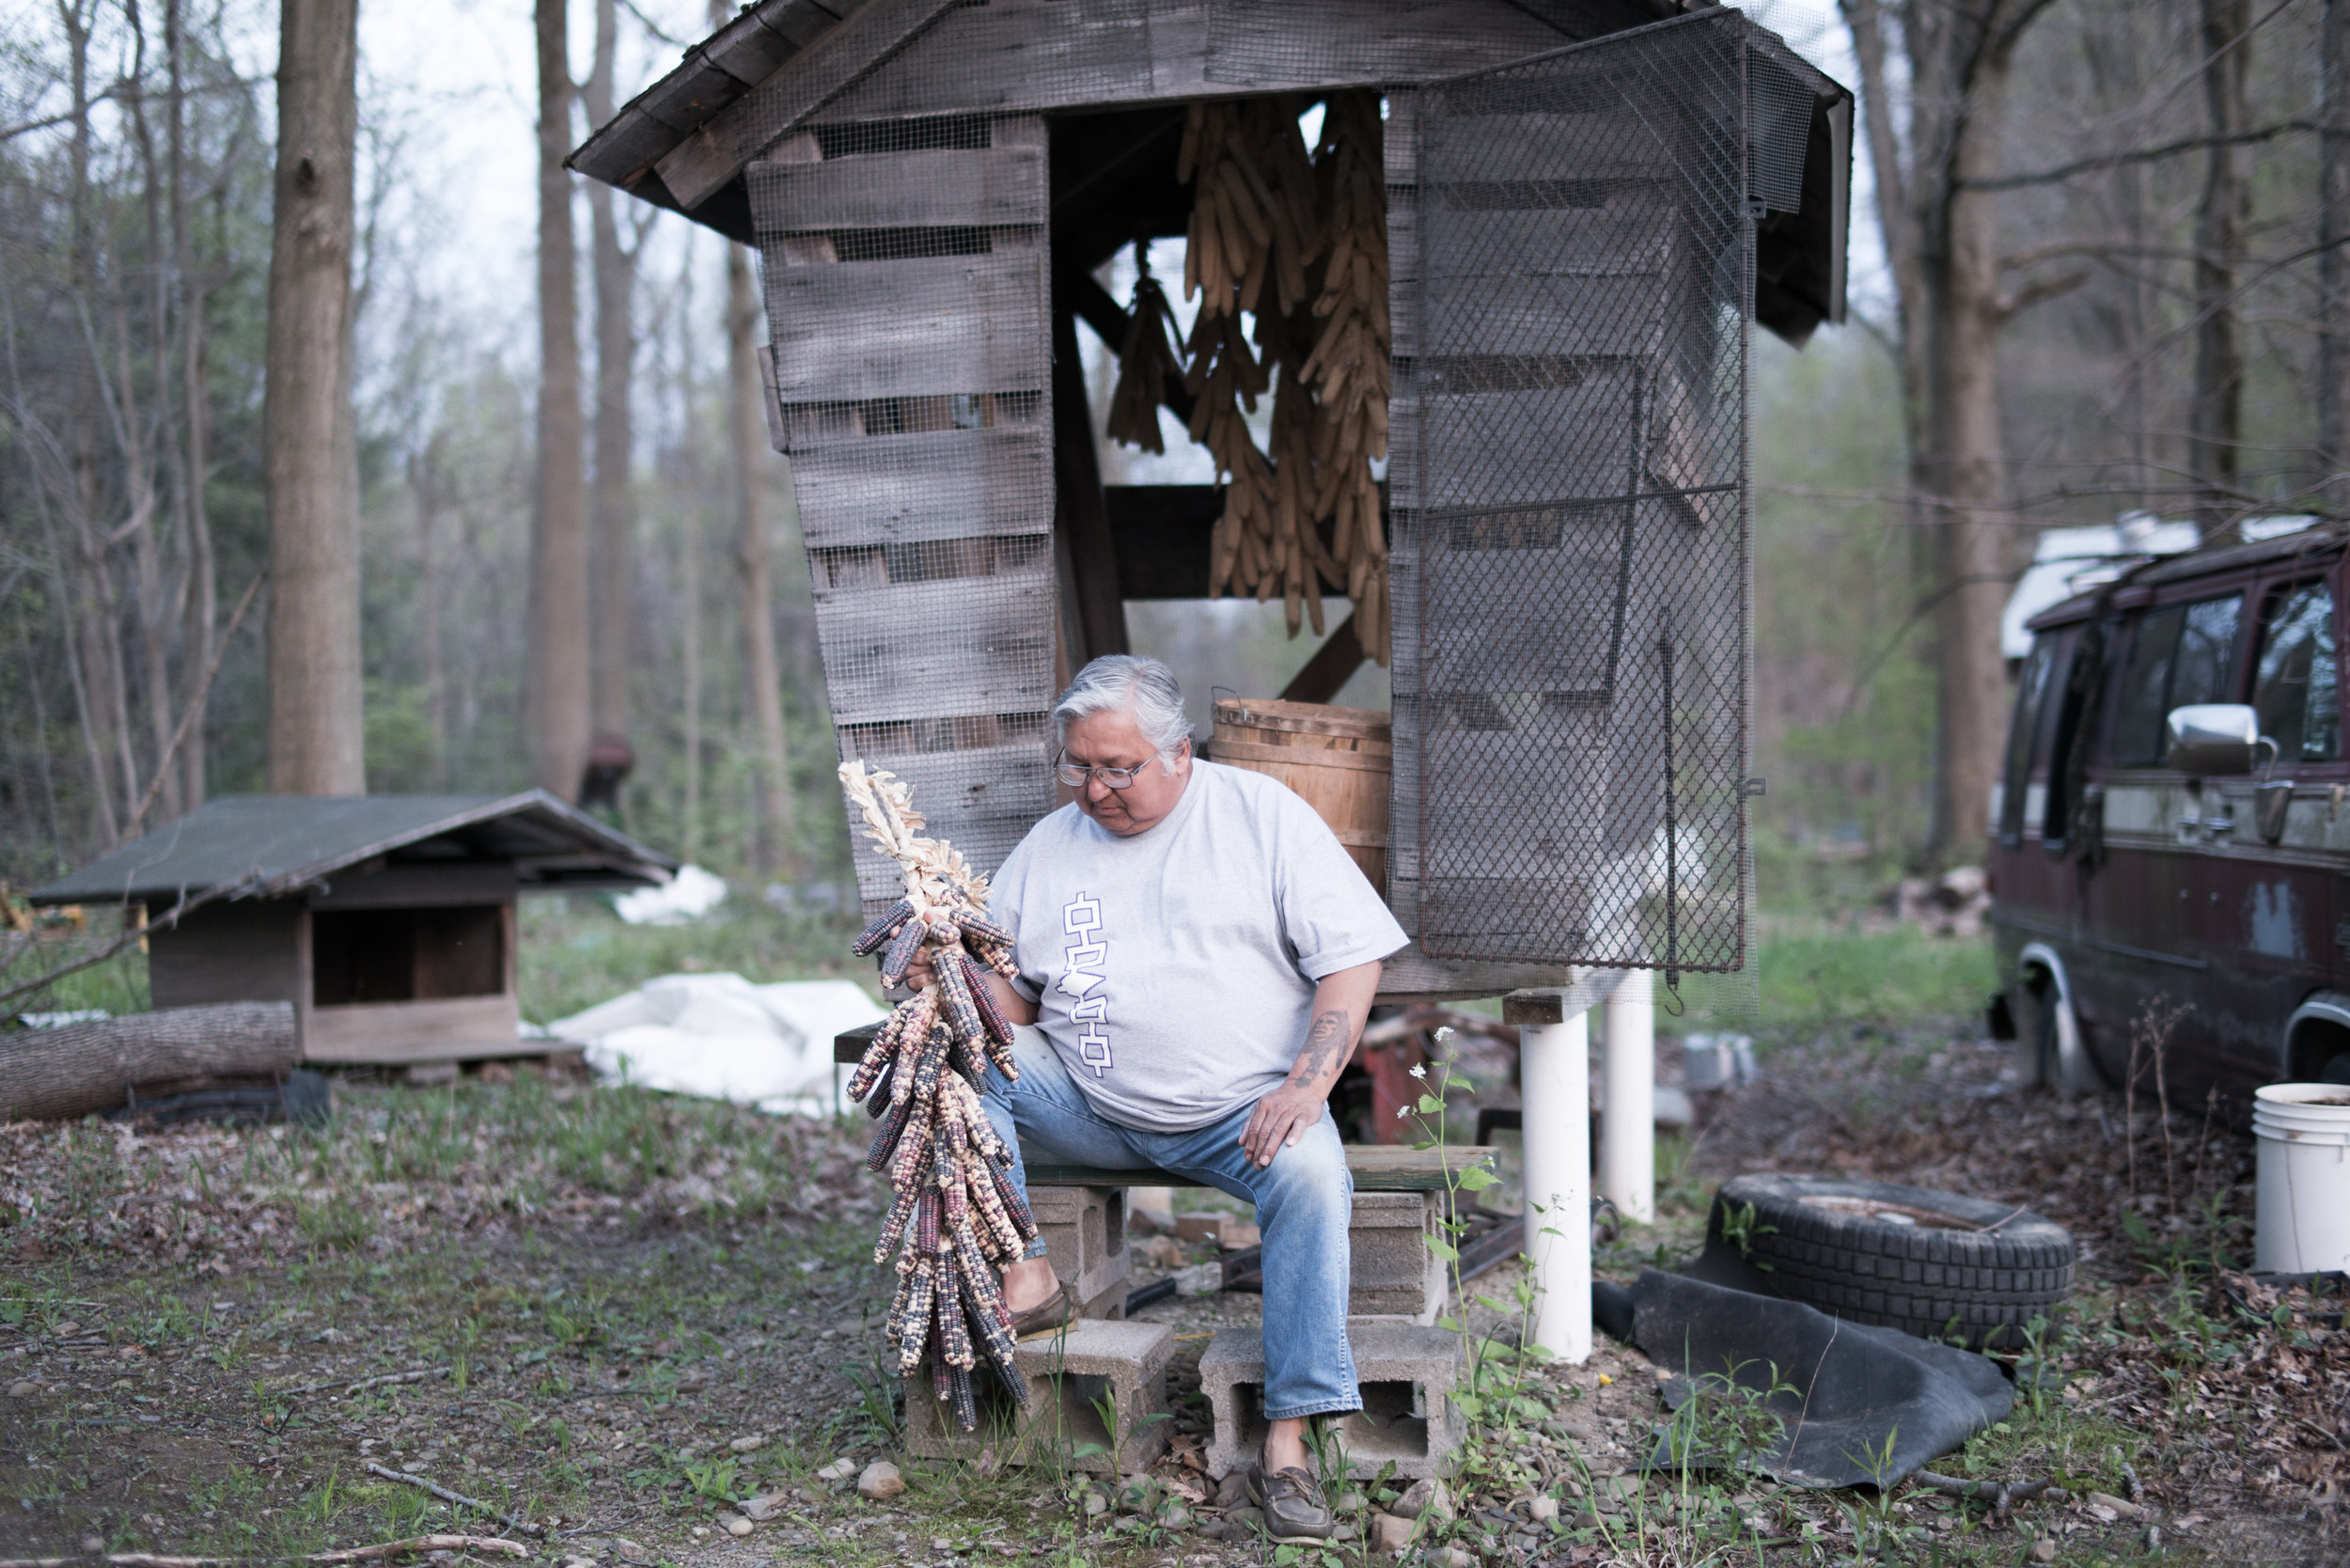 Rich Kettle, Seneca, in front of his corn crib with his braid of Hehgowa corn, gifted to him by friend from Onondaga. Rich was going to give up on planting this year until, as he says, he saw this braid of corn which called his name to plant.  The corn in the corn crib is white corn— the predominant variety of corn grown in the Haudenosaunee Nation. Corn cribs are the traditional way of storing seeds, keeping seeds alive is an important part of sovereignty. The quality of seed is important, everyone has always selected the best of their seed corn to make braids to plant the next season. Oftentimes corn is stored in individual corn cribs akin to this one. Now, however, as fewer people are maintaining seed tradition, Nations such as neighboring Onondaga realize the importance of ensuring seed sovereignty, and are currently constructing a tribal seed crib to maintain the corn of the community.   (Photo credit: Mateo Hinojosa)